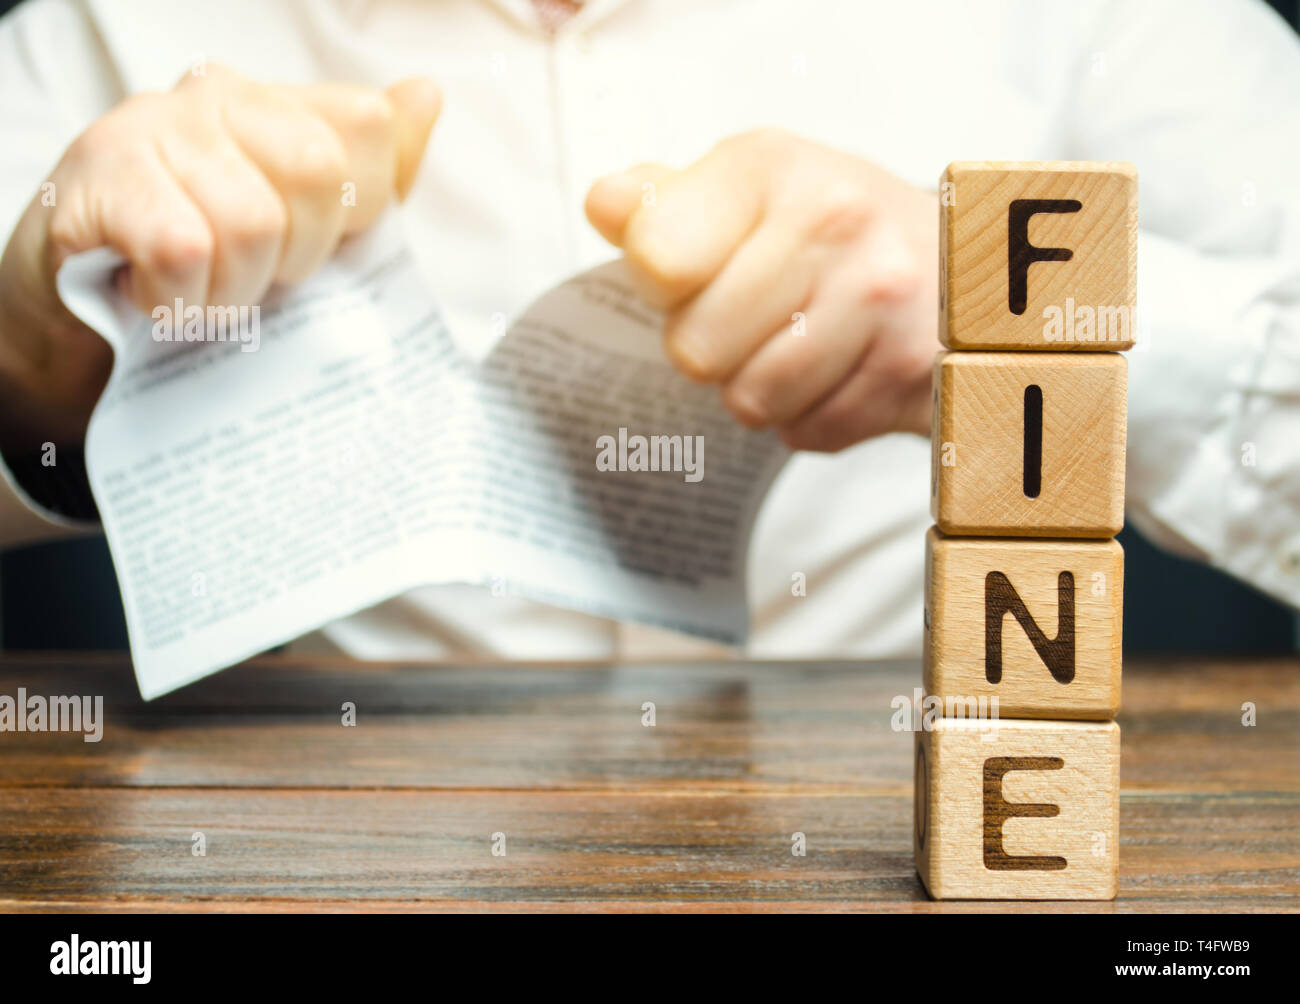 A person disputed the illegal fines and taxes. Unfair tariffs and penalties. Proof of innocence and exemption from payment. Categorical disagreement w - Stock Image